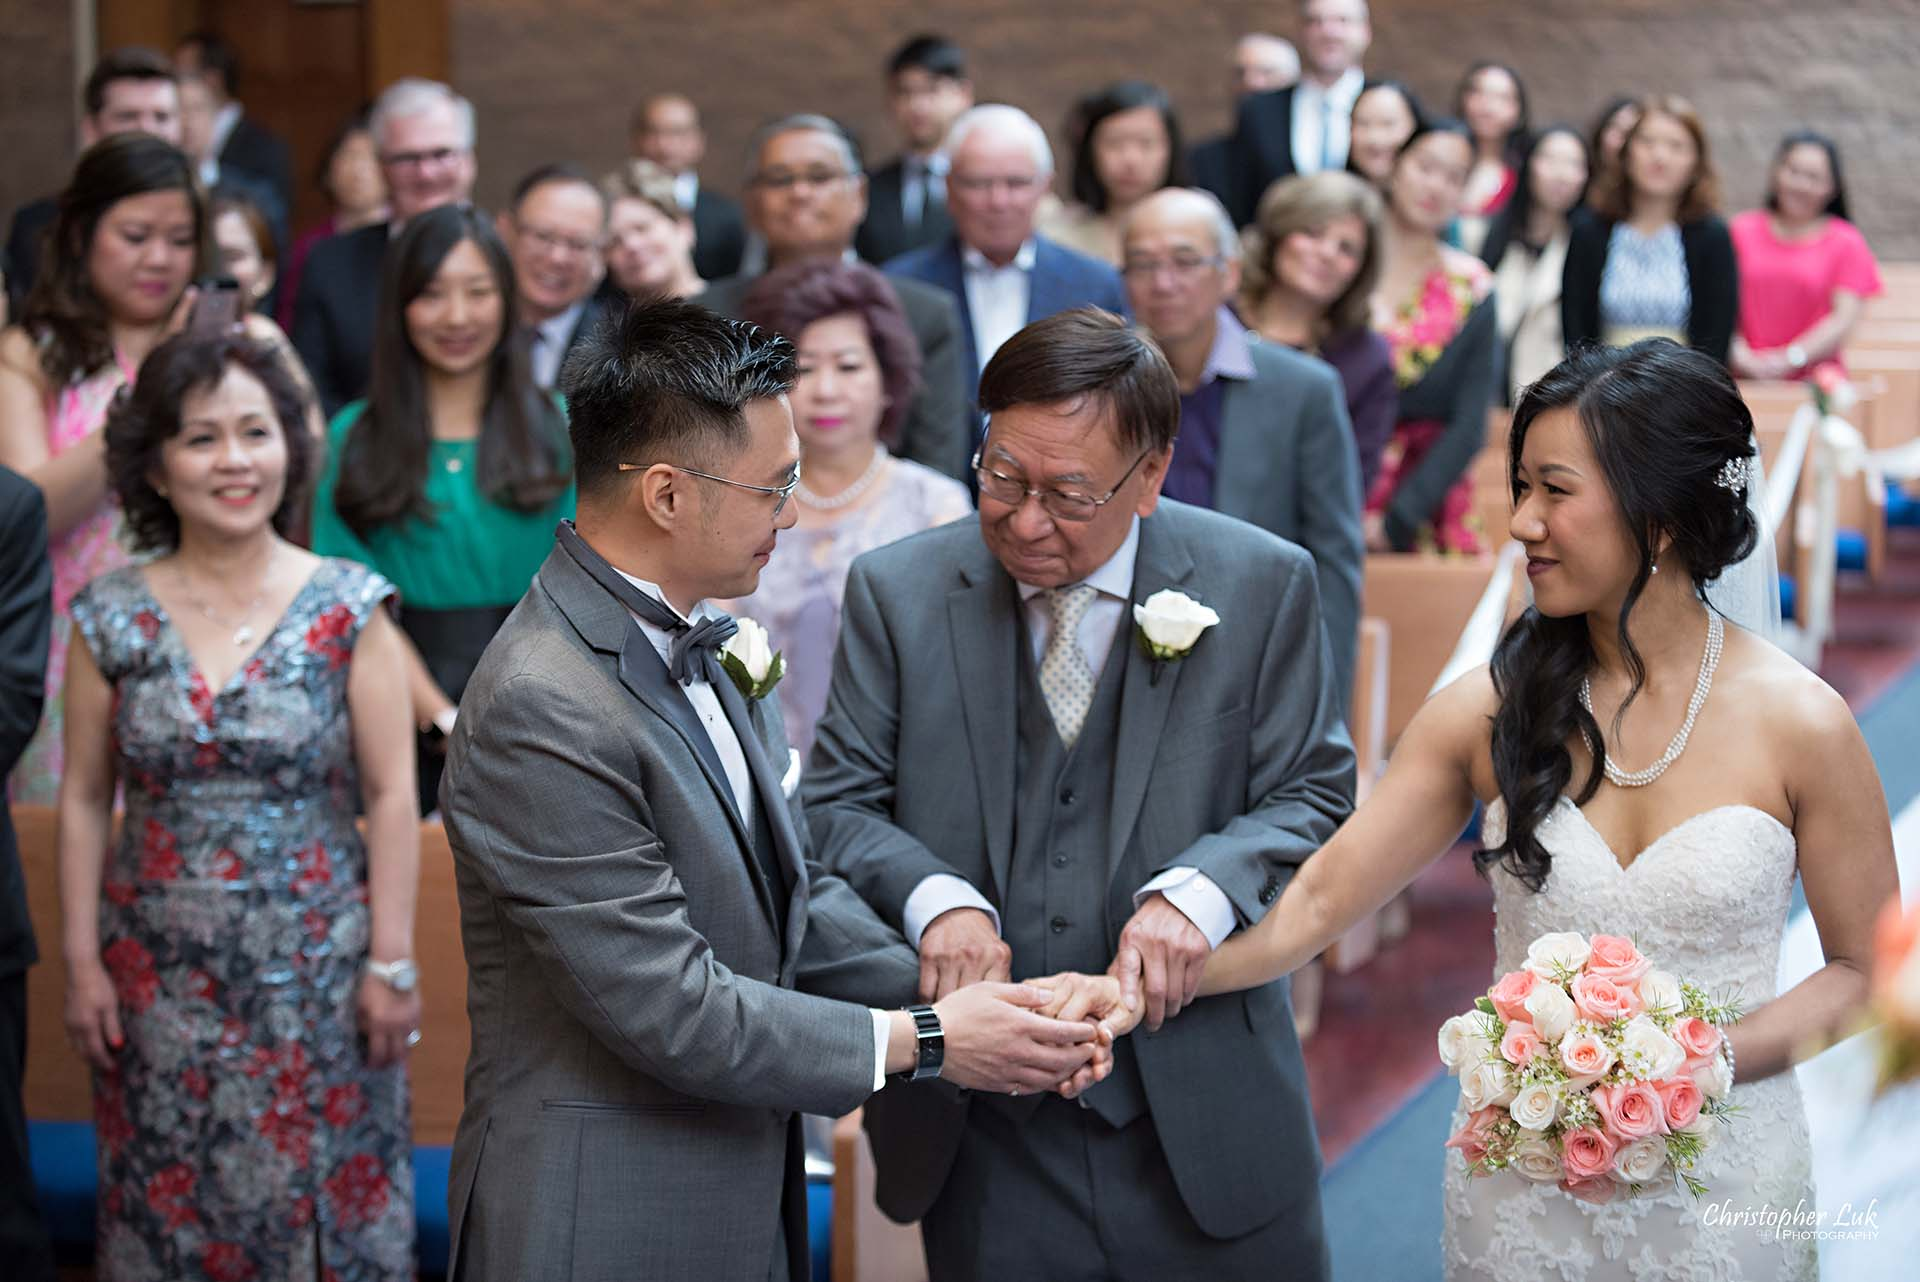 Christopher Luk Toronto Wedding Photographer Trinity York Mills Church Ceremony Sanctuary Candid Natural Photojournalistic Groom Bride Father Walking Down the Aisle Processional Hand Off Who Gives This Woman to this Man